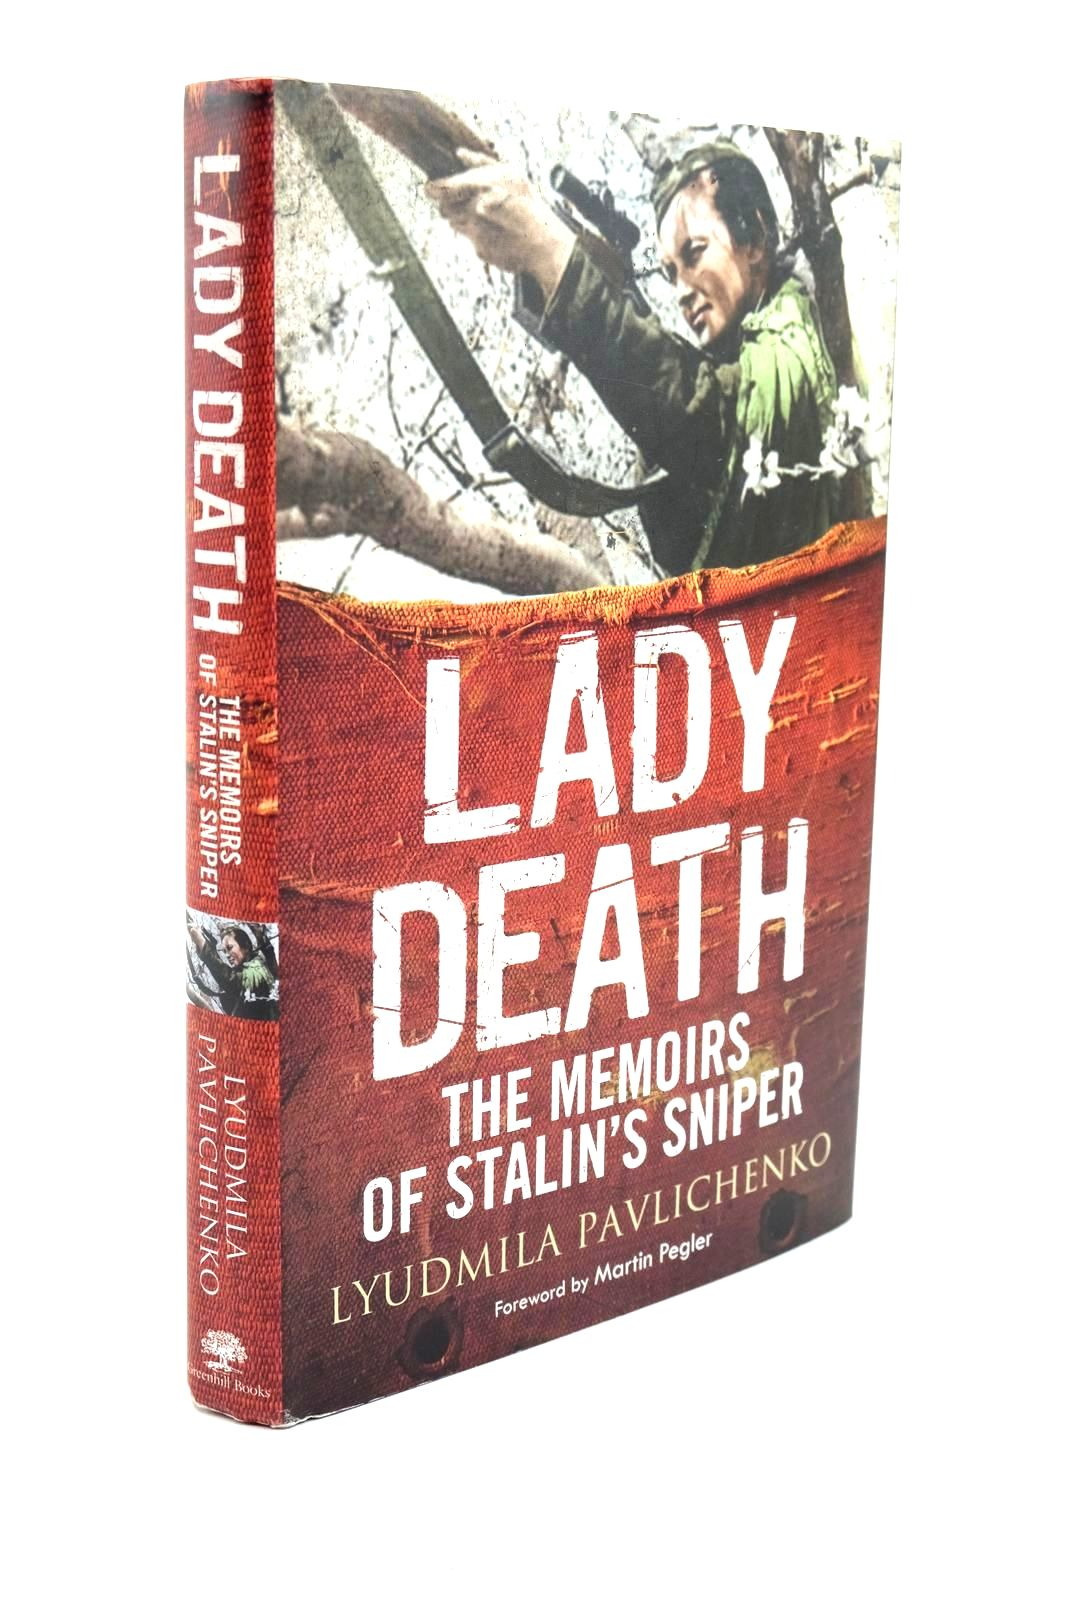 Photo of LADY DEATH THE MEMOIRS OF STALIN'S SNIPER- Stock Number: 1321486